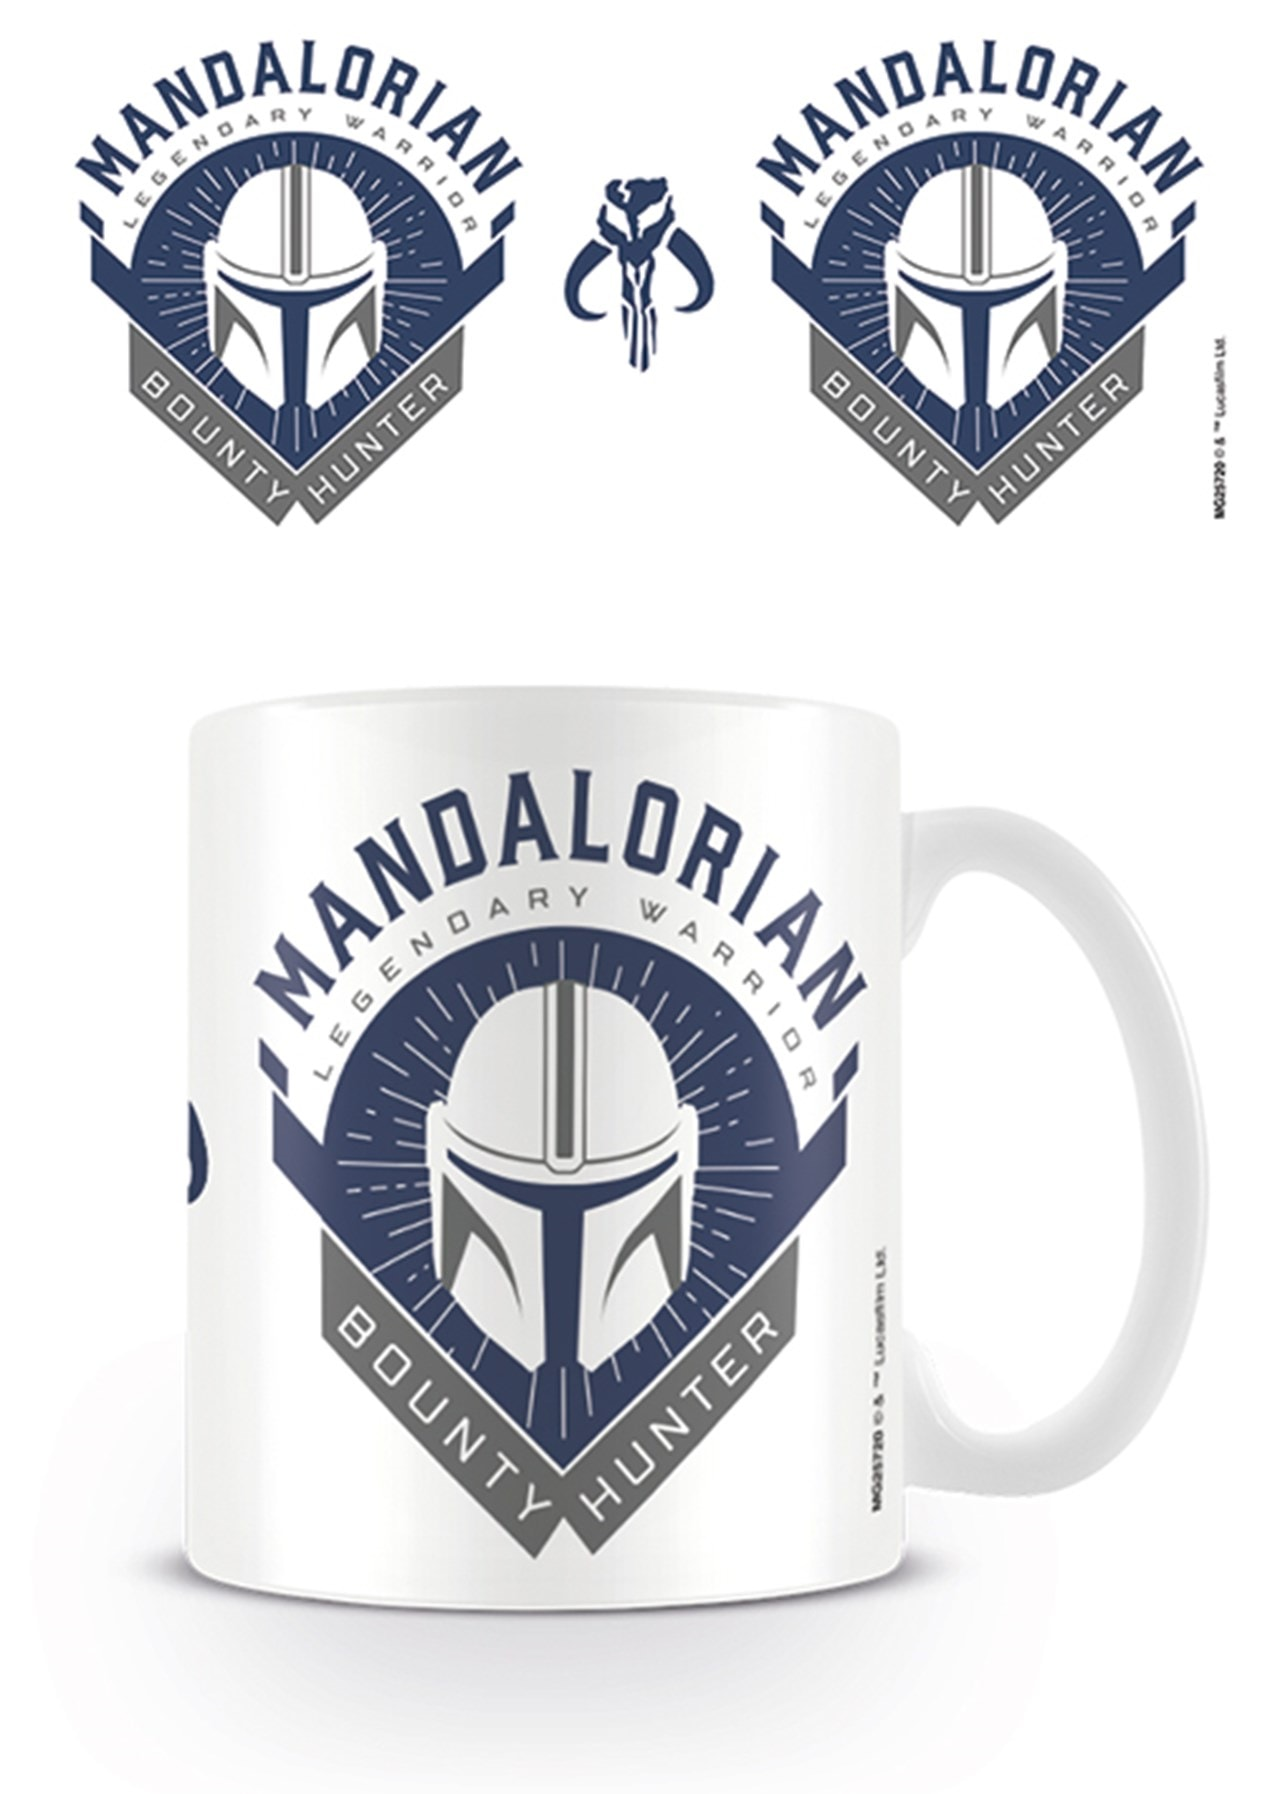 Star Wars: The Mandalorian (Bounty Hunter) Mug - 1